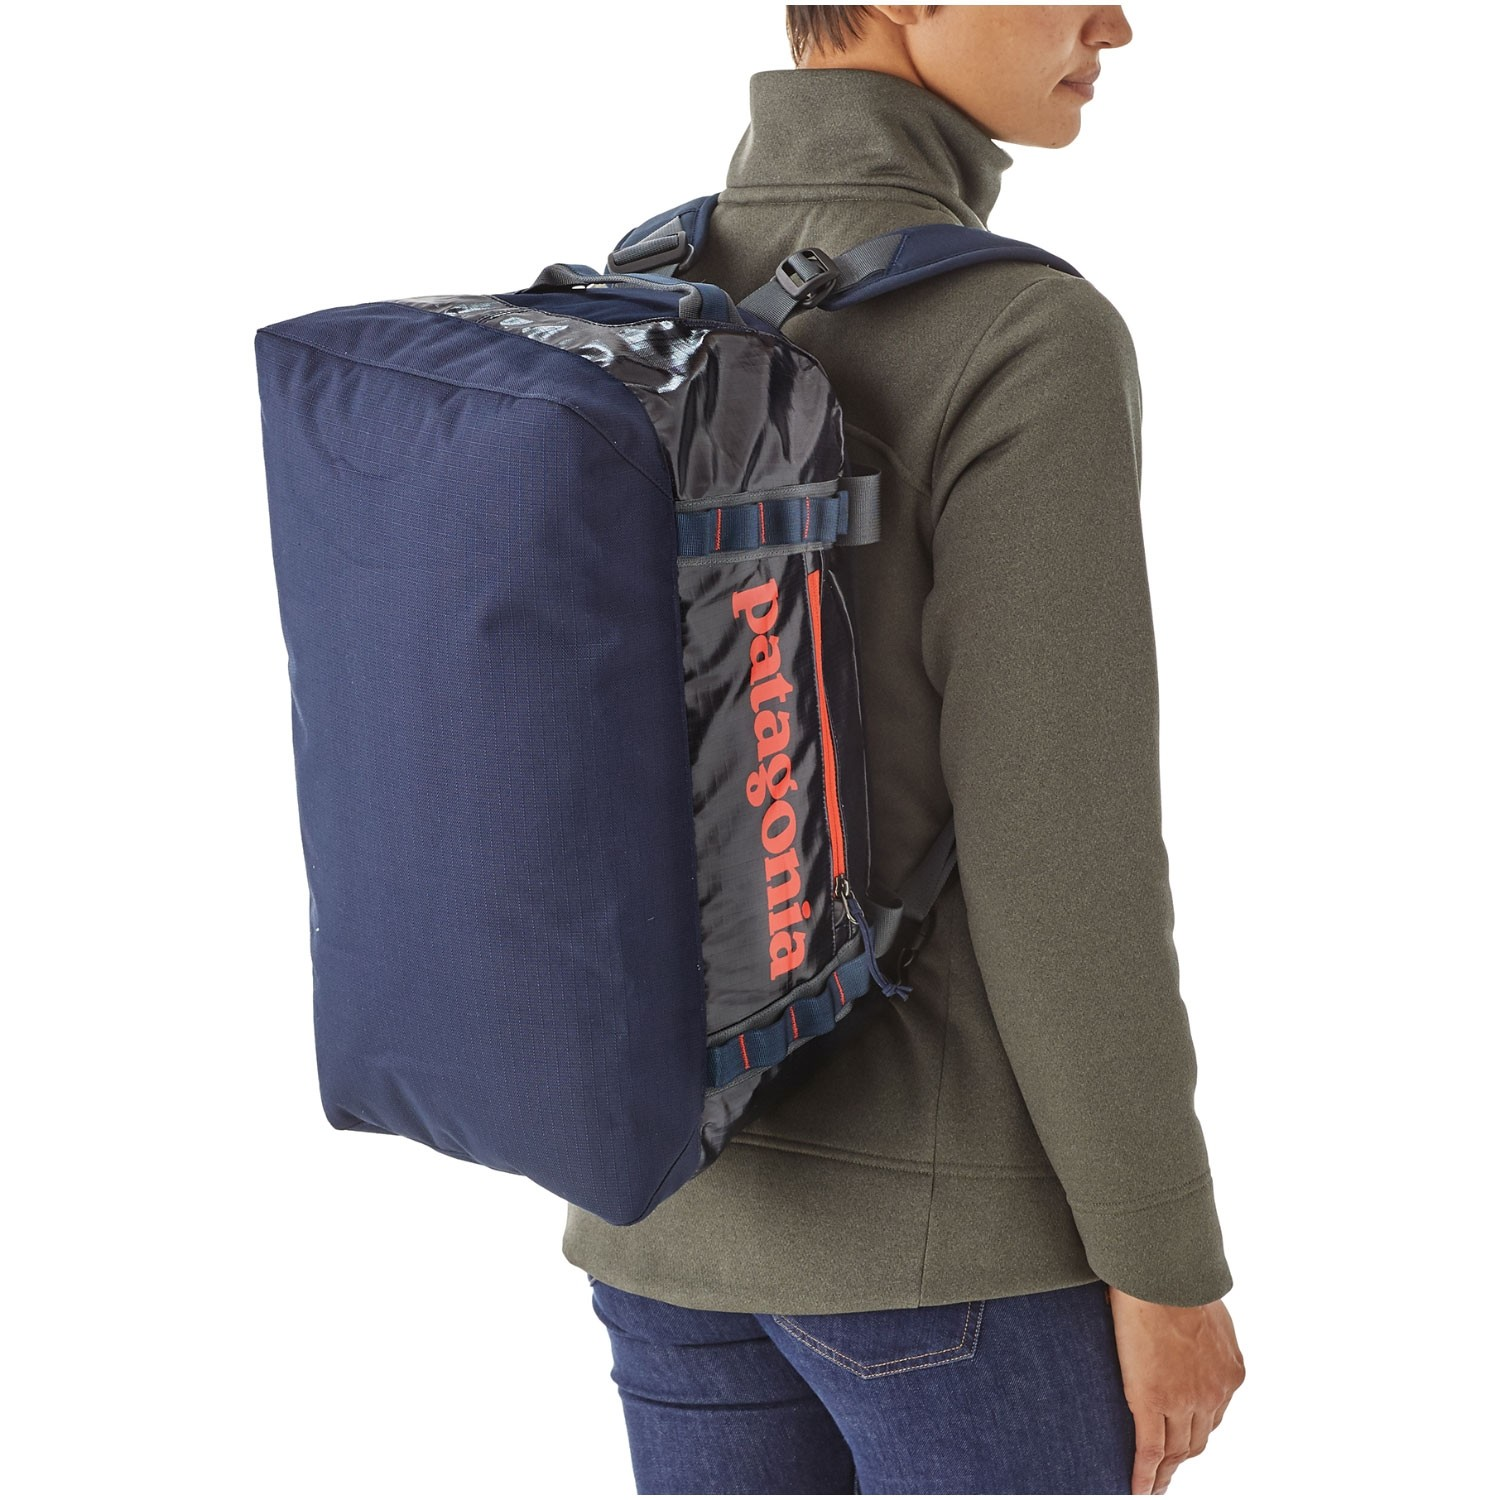 Patagonia-Black-Hole-Duffel-45L-Navy-Blue-w-Paintbrush-Red backpack